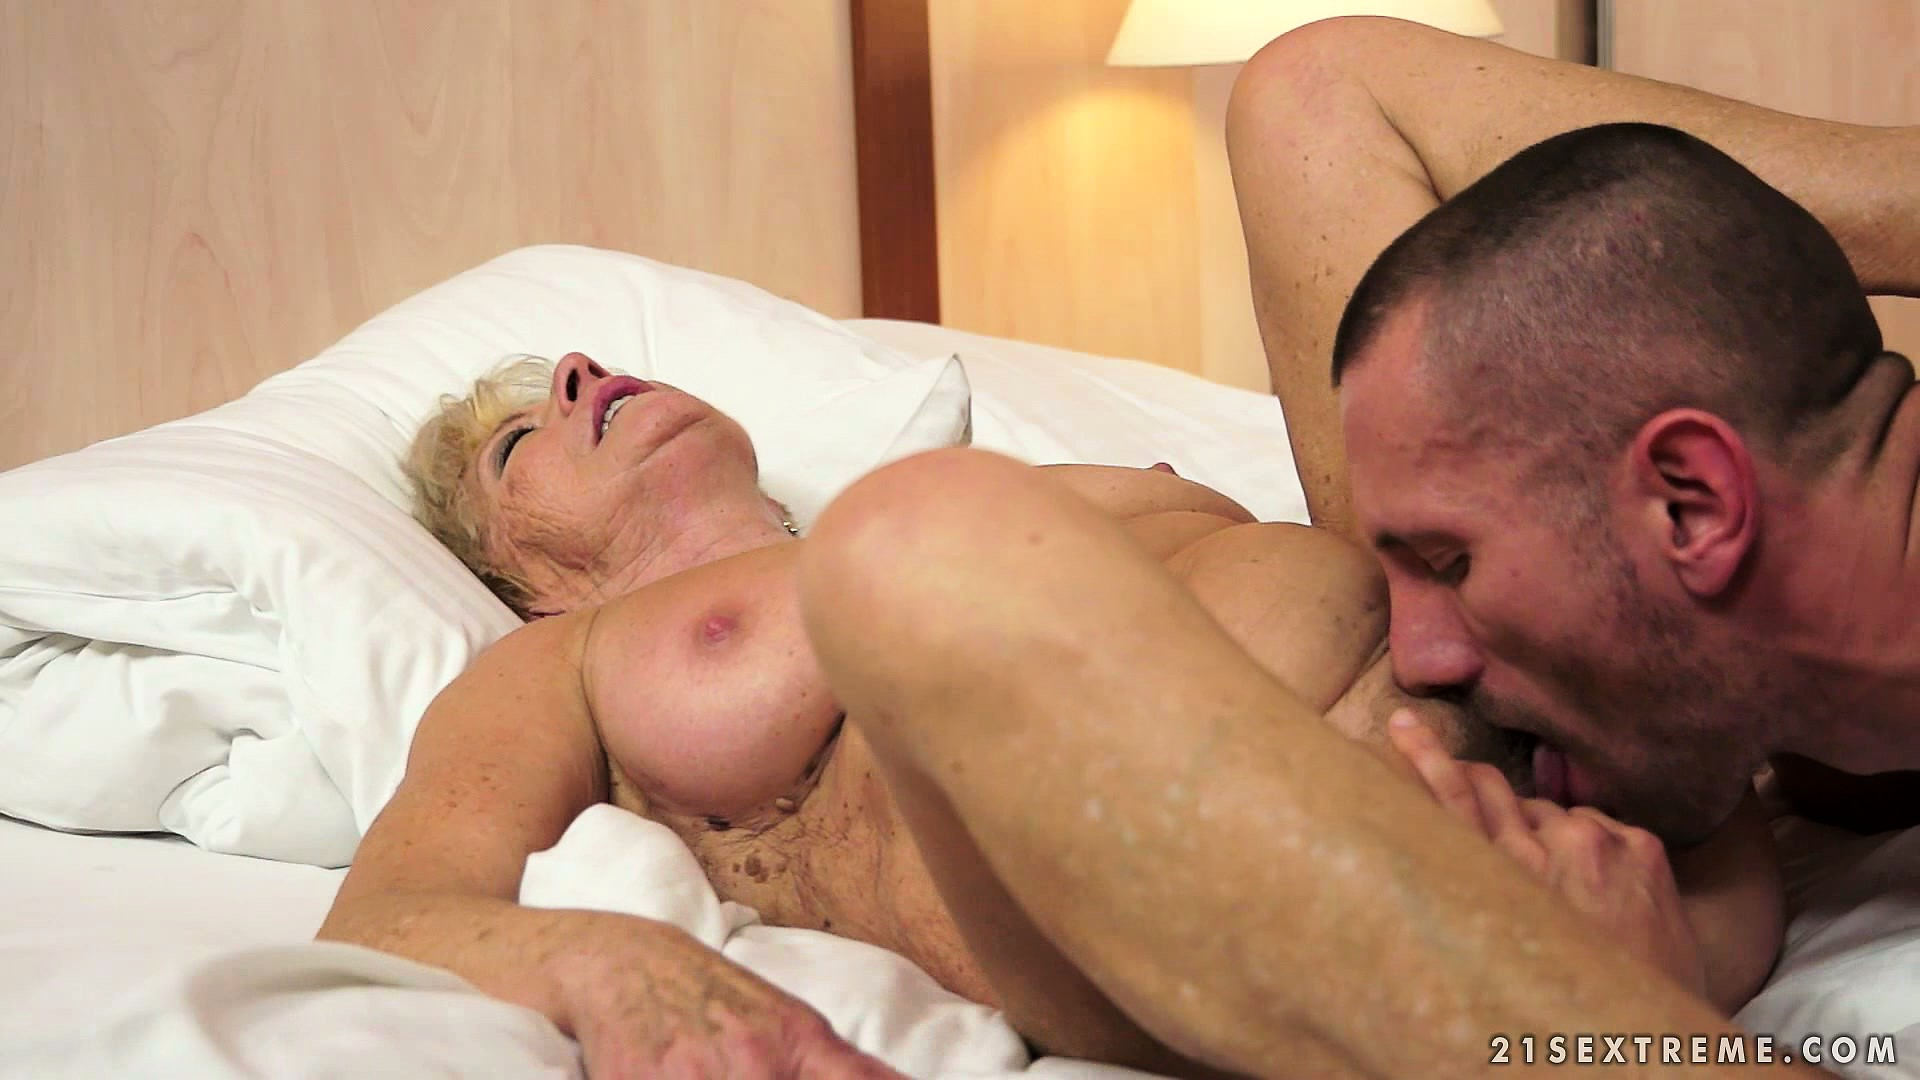 Porn Tube of Young Cock Pushed Into This Granny's Cunt Will Make Her Yell